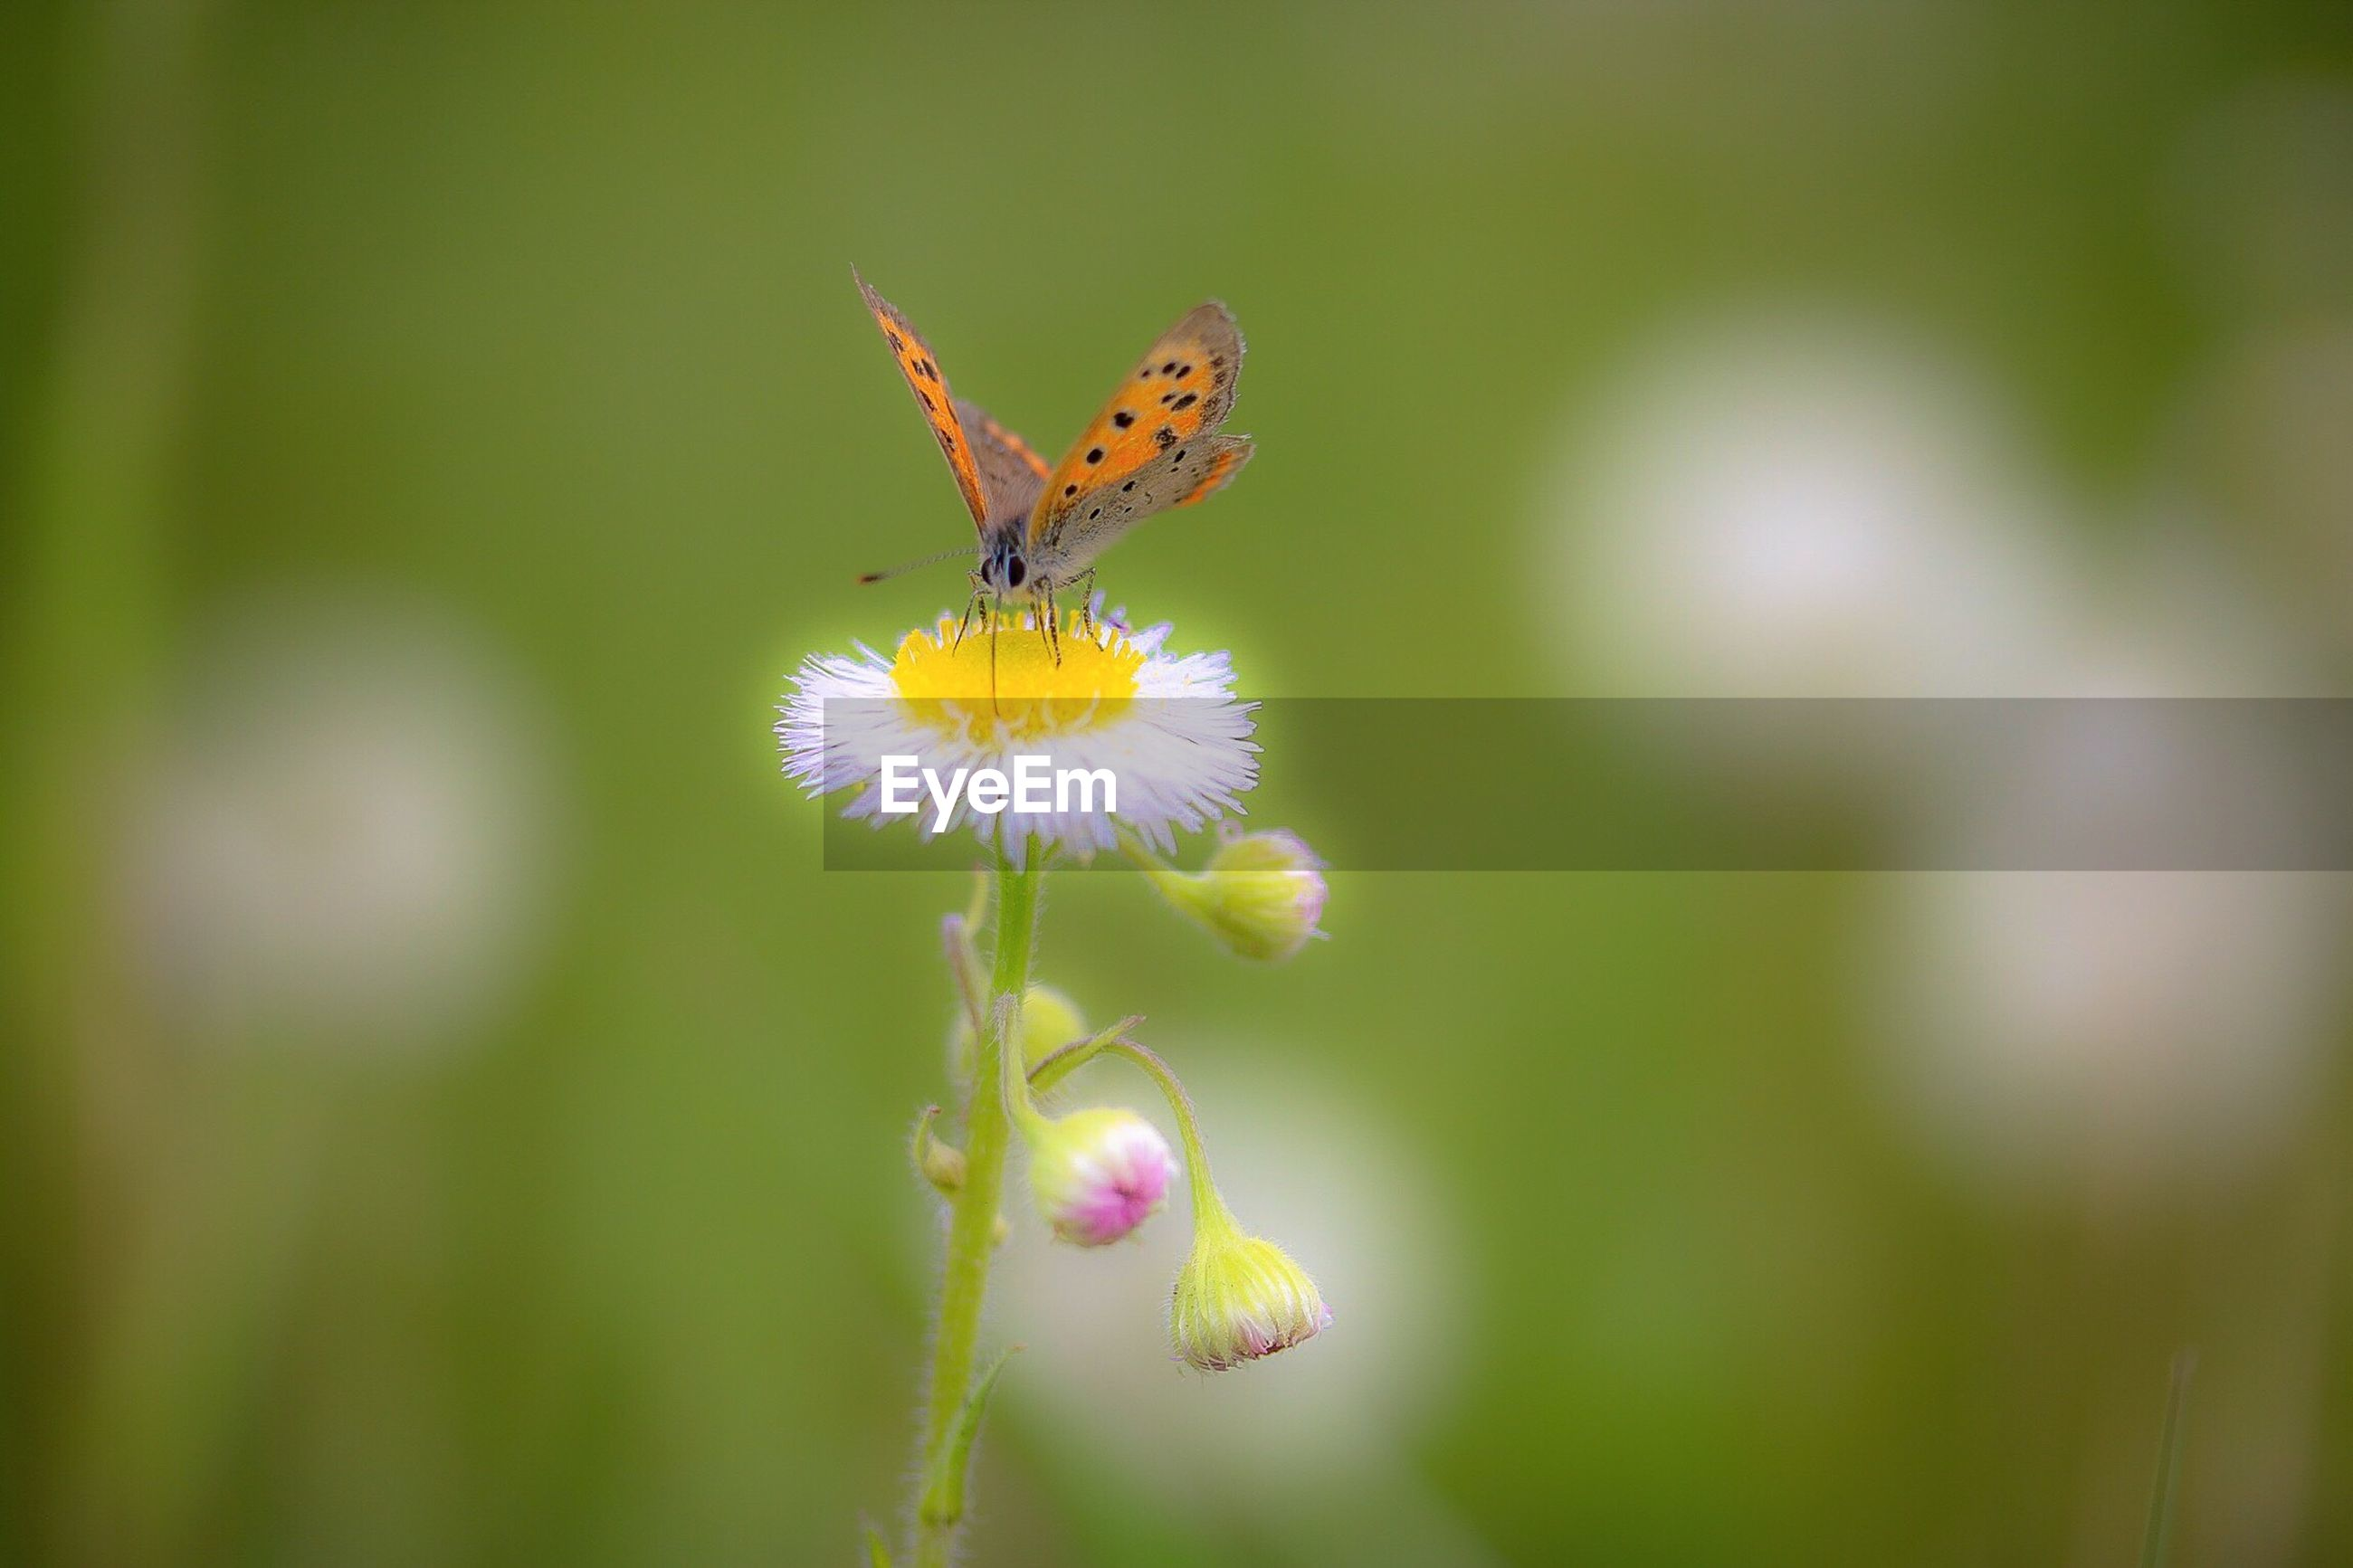 insect, flower, animal themes, one animal, animals in the wild, wildlife, pollination, fragility, freshness, close-up, focus on foreground, petal, beauty in nature, growth, nature, symbiotic relationship, flower head, plant, bee, selective focus